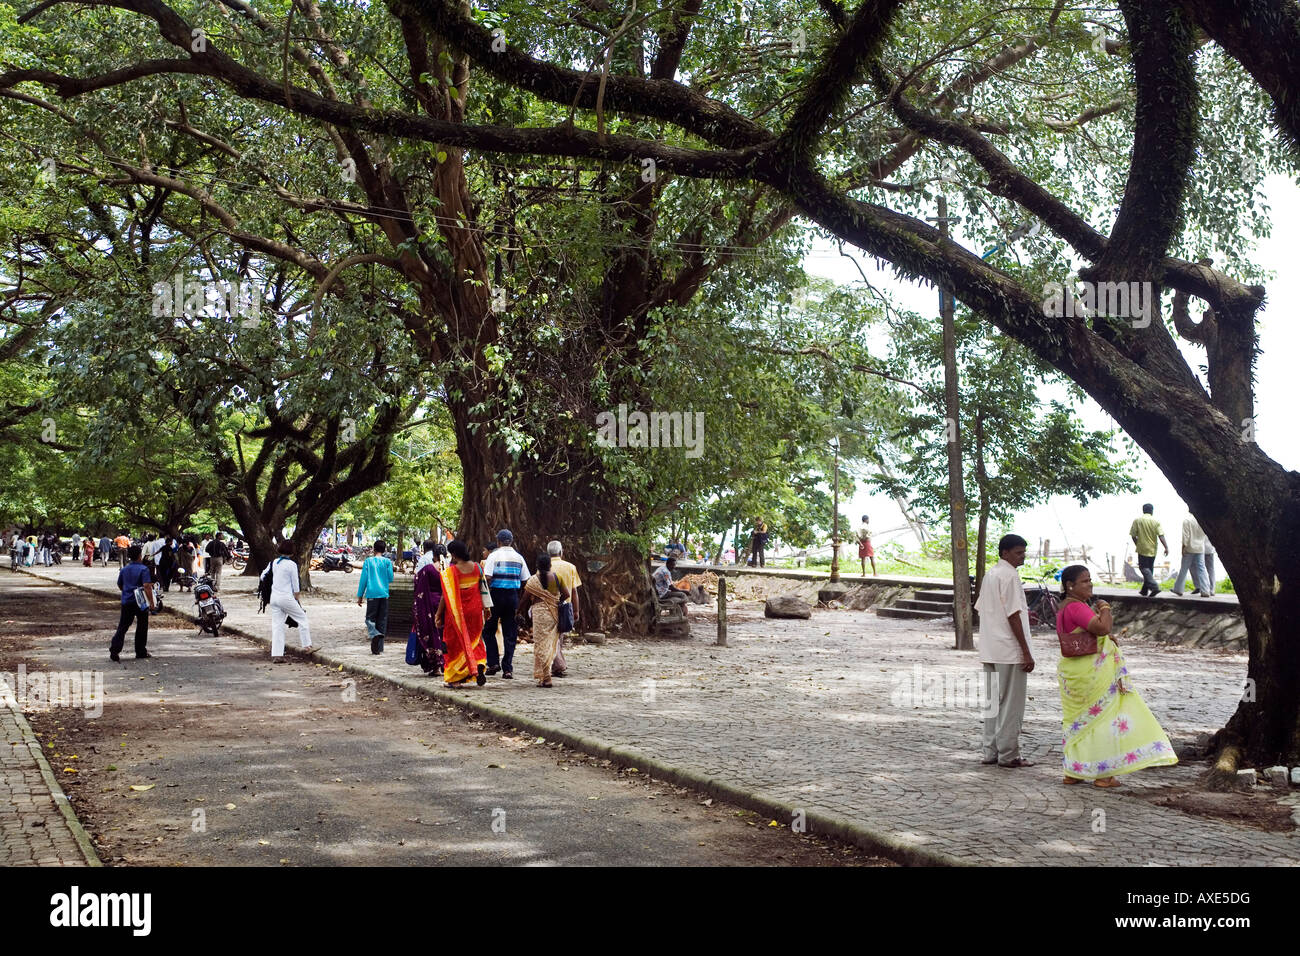 Calvethy River Road a small sea front promenade popular with local inhabitants Fort Kochi Cochin Kerala South India - Stock Image